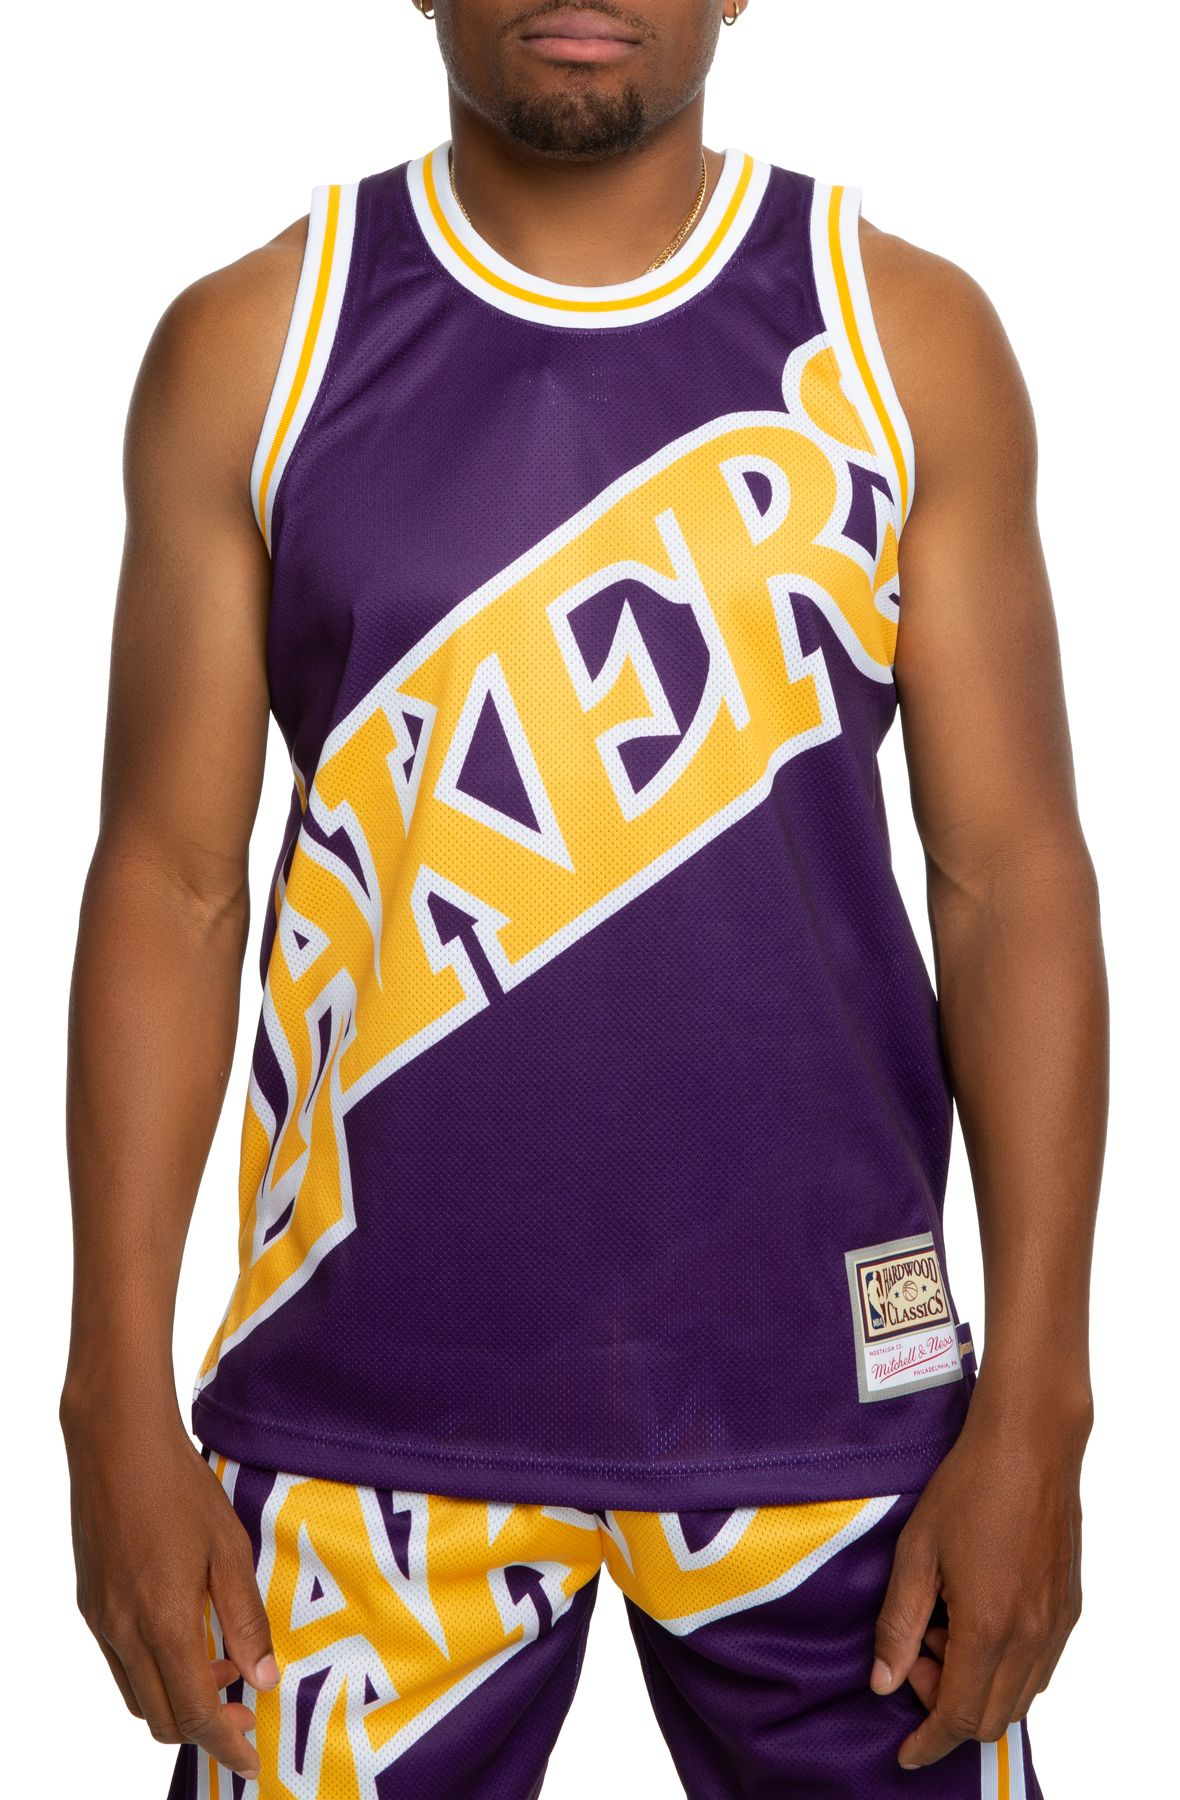 LOS ANGELES LAKERS BIG FACE JERSEY